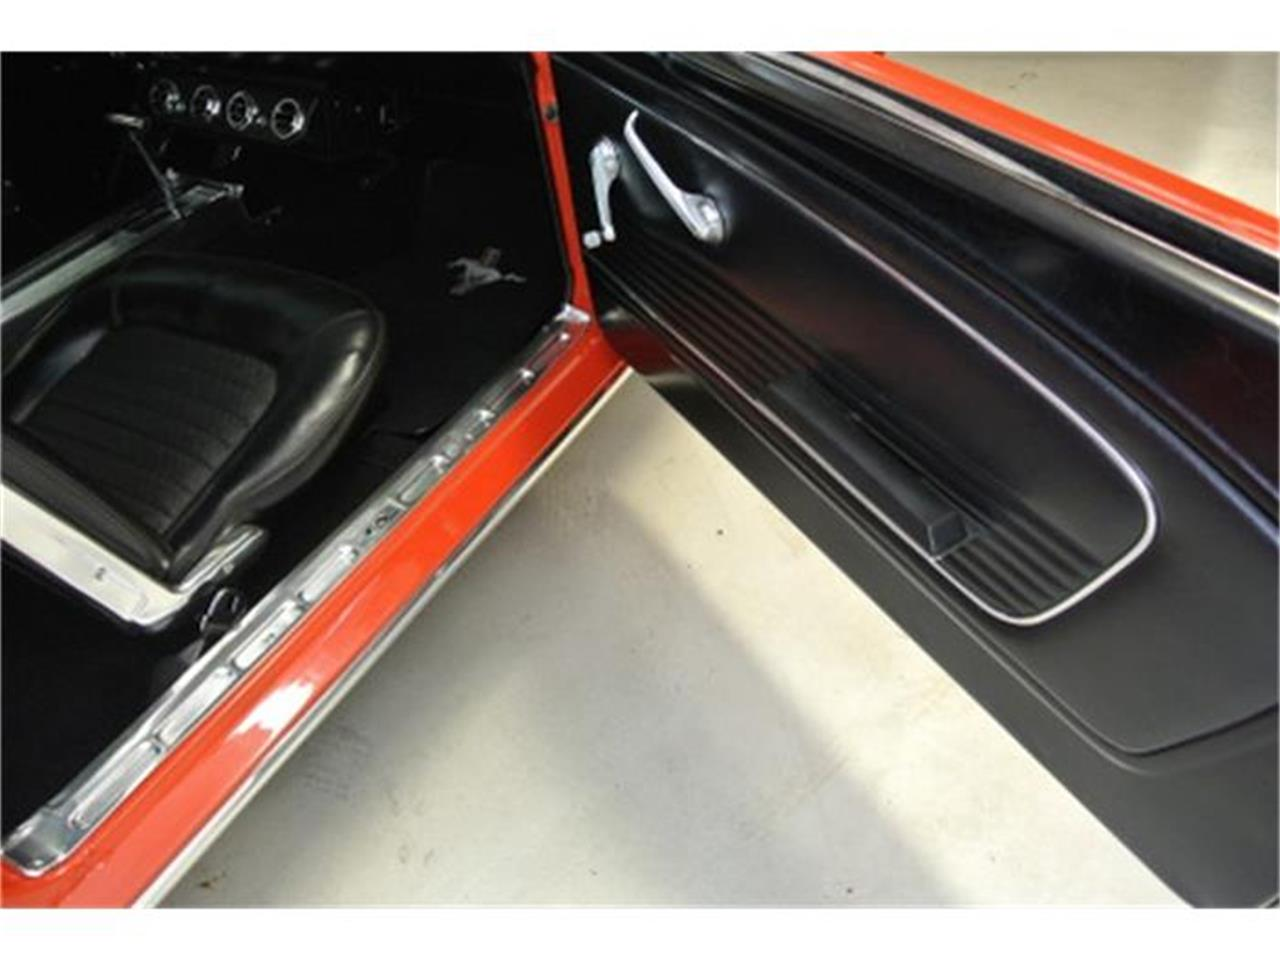 Large Picture of Classic 1966 Ford Mustang located in Georgia - $44,950.00 - HDAI